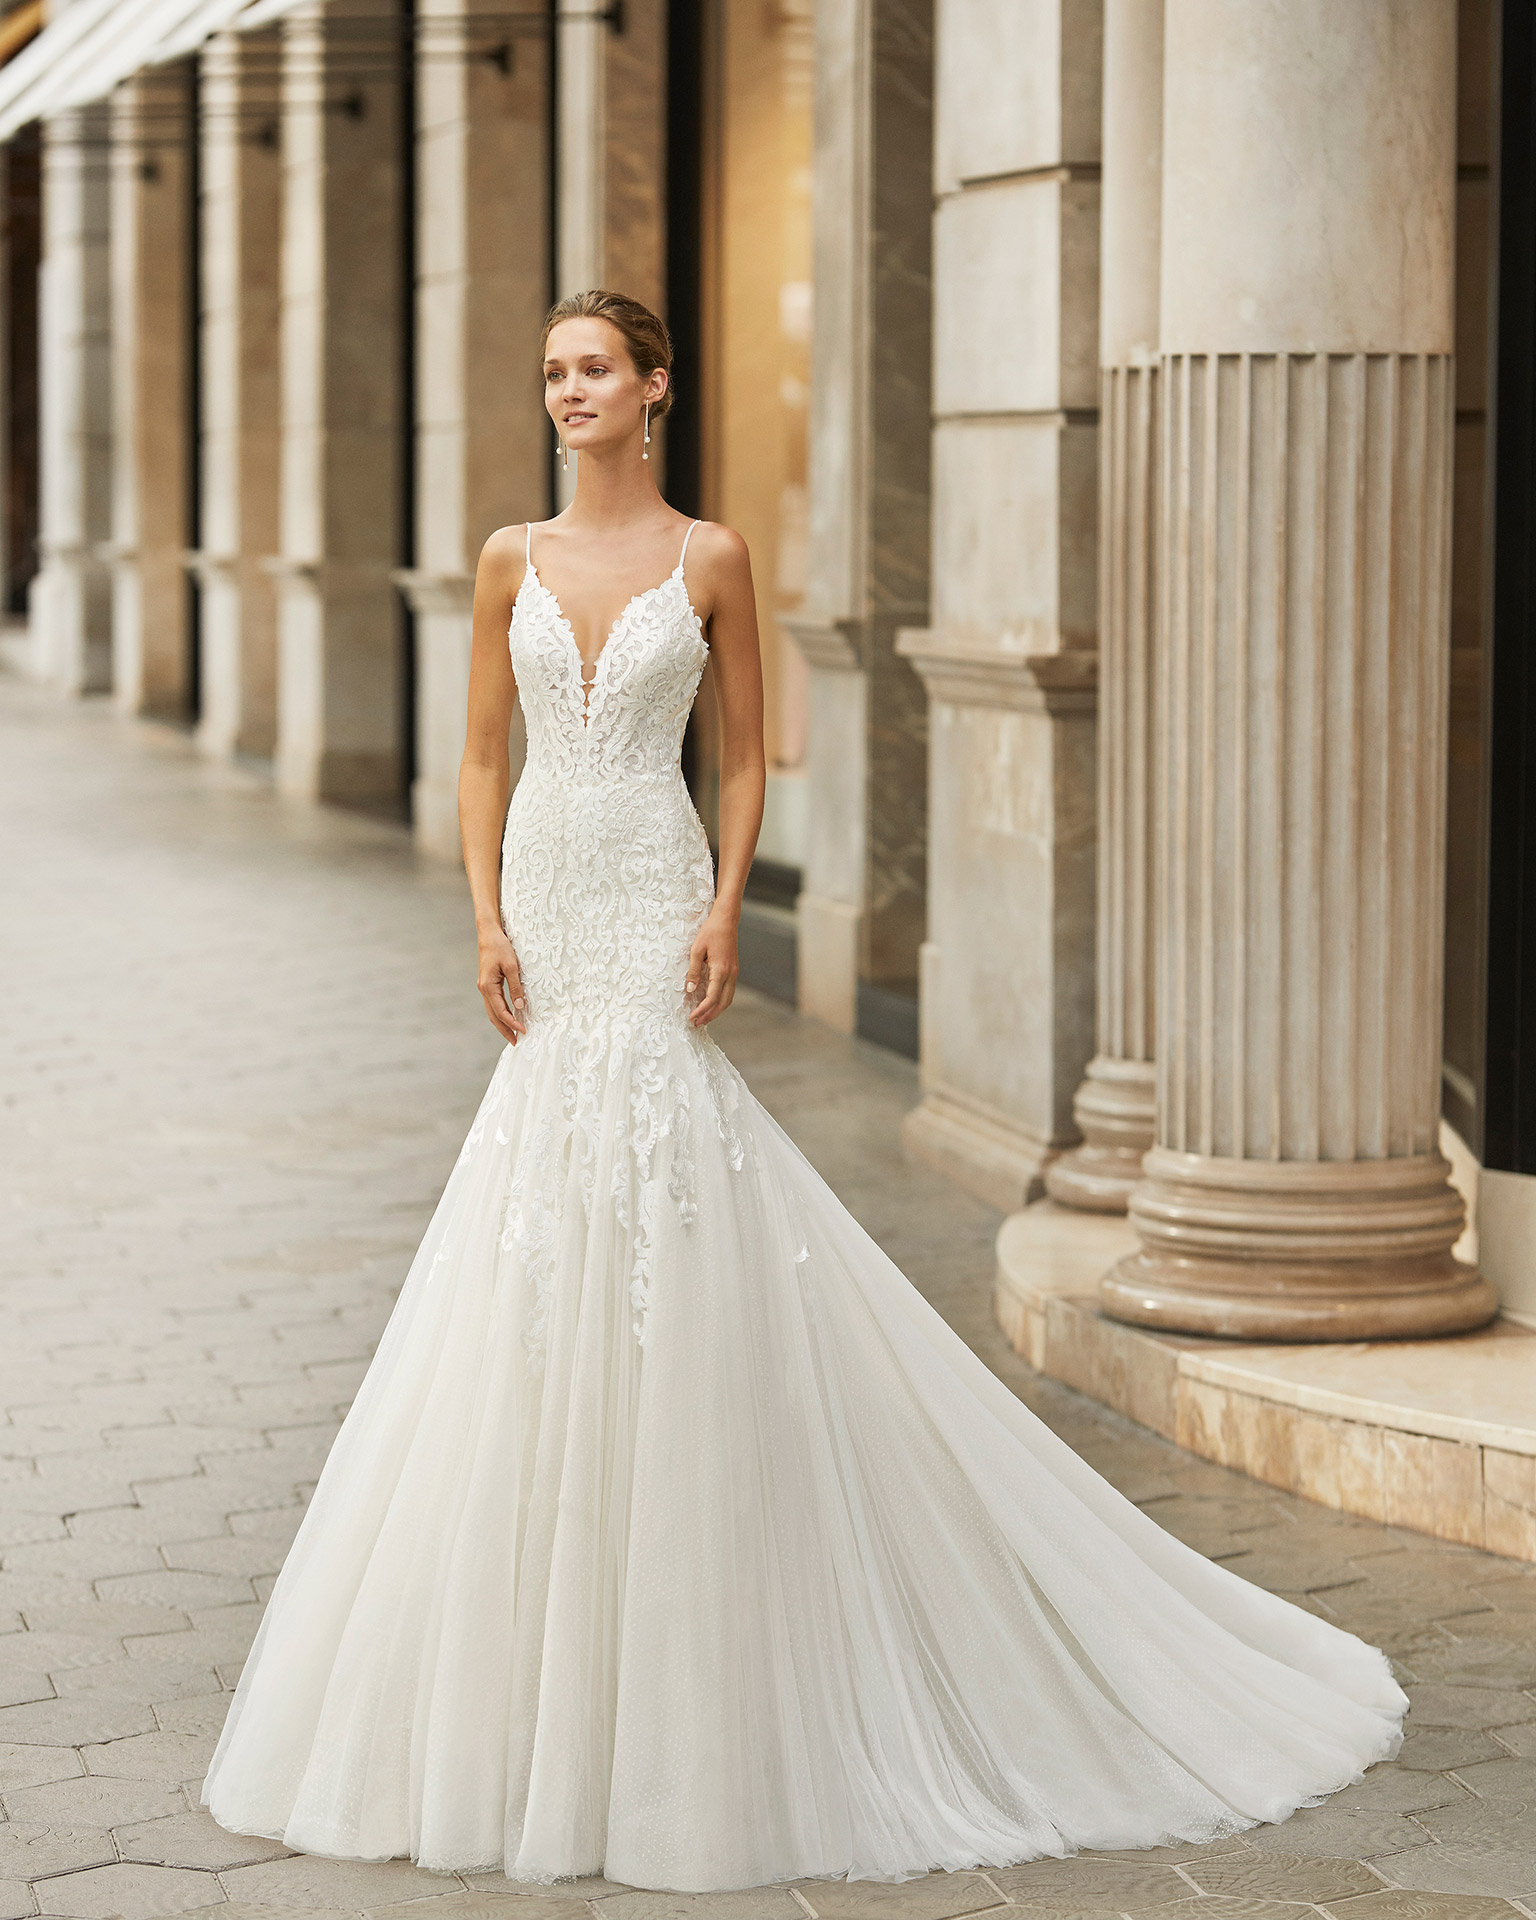 Mermaid wedding dress, lace, dot tulle and beaded straps. Deep-plunge neckline and low back. 2022  Collection.